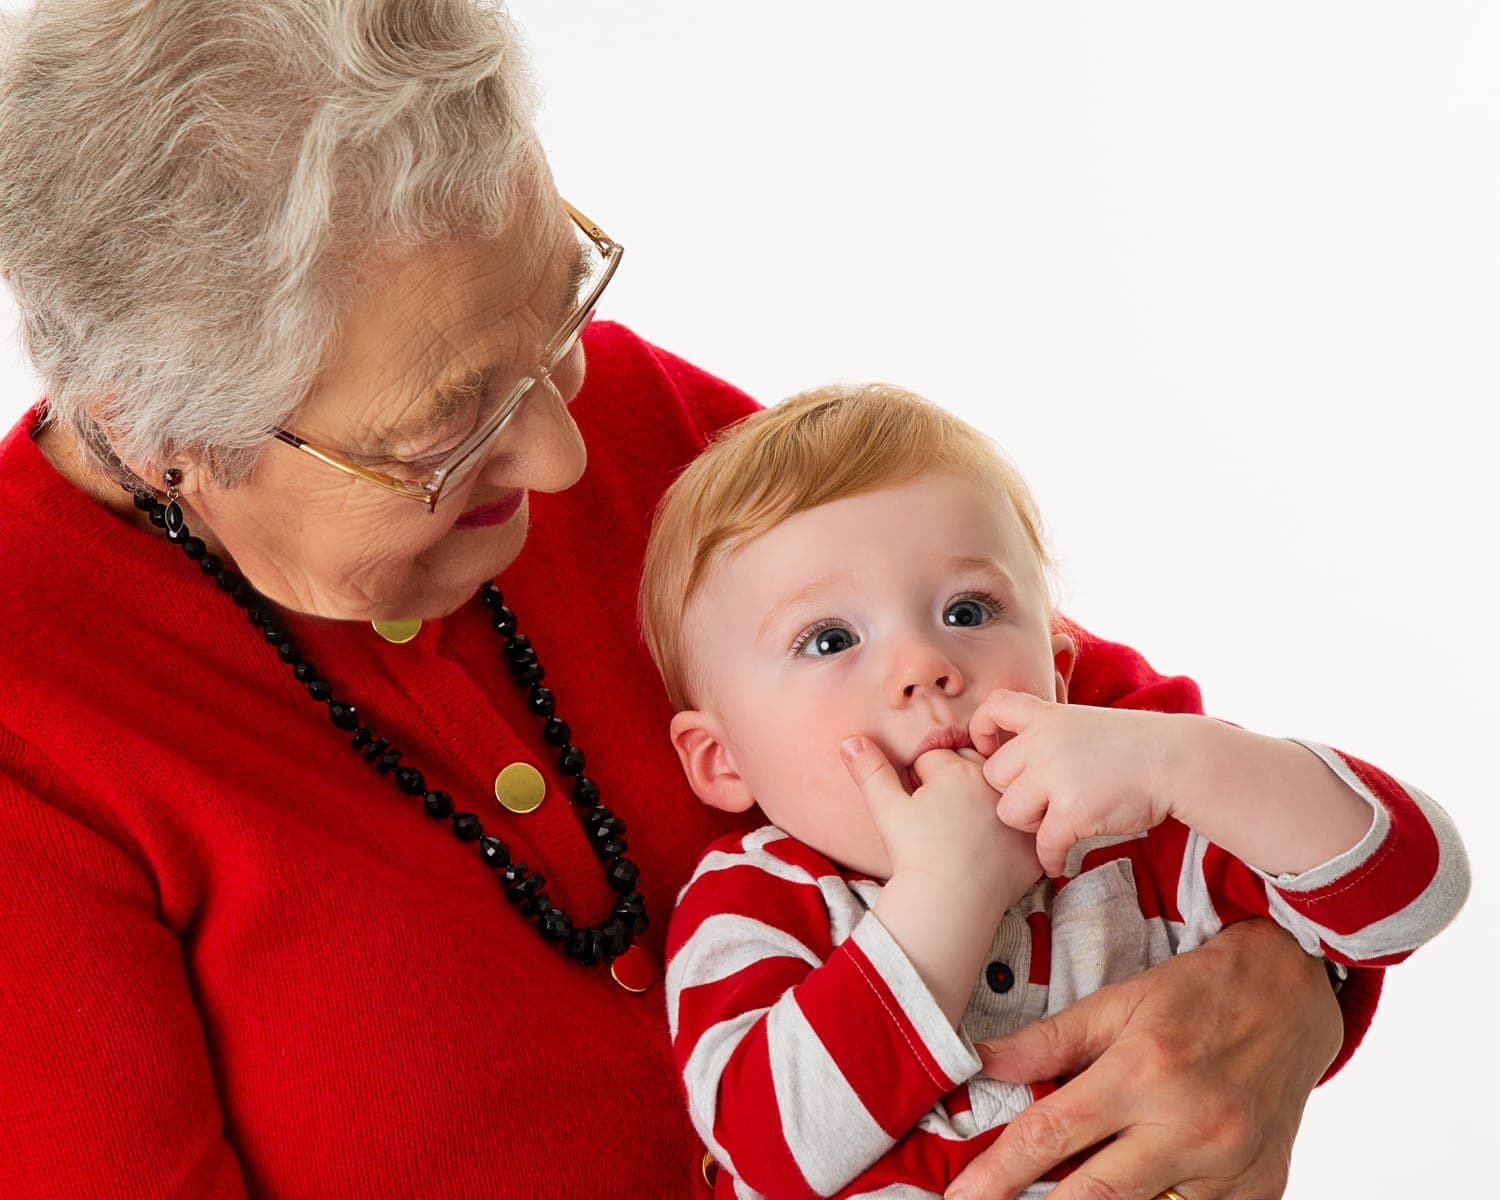 great grandmother & great grandson photography generation